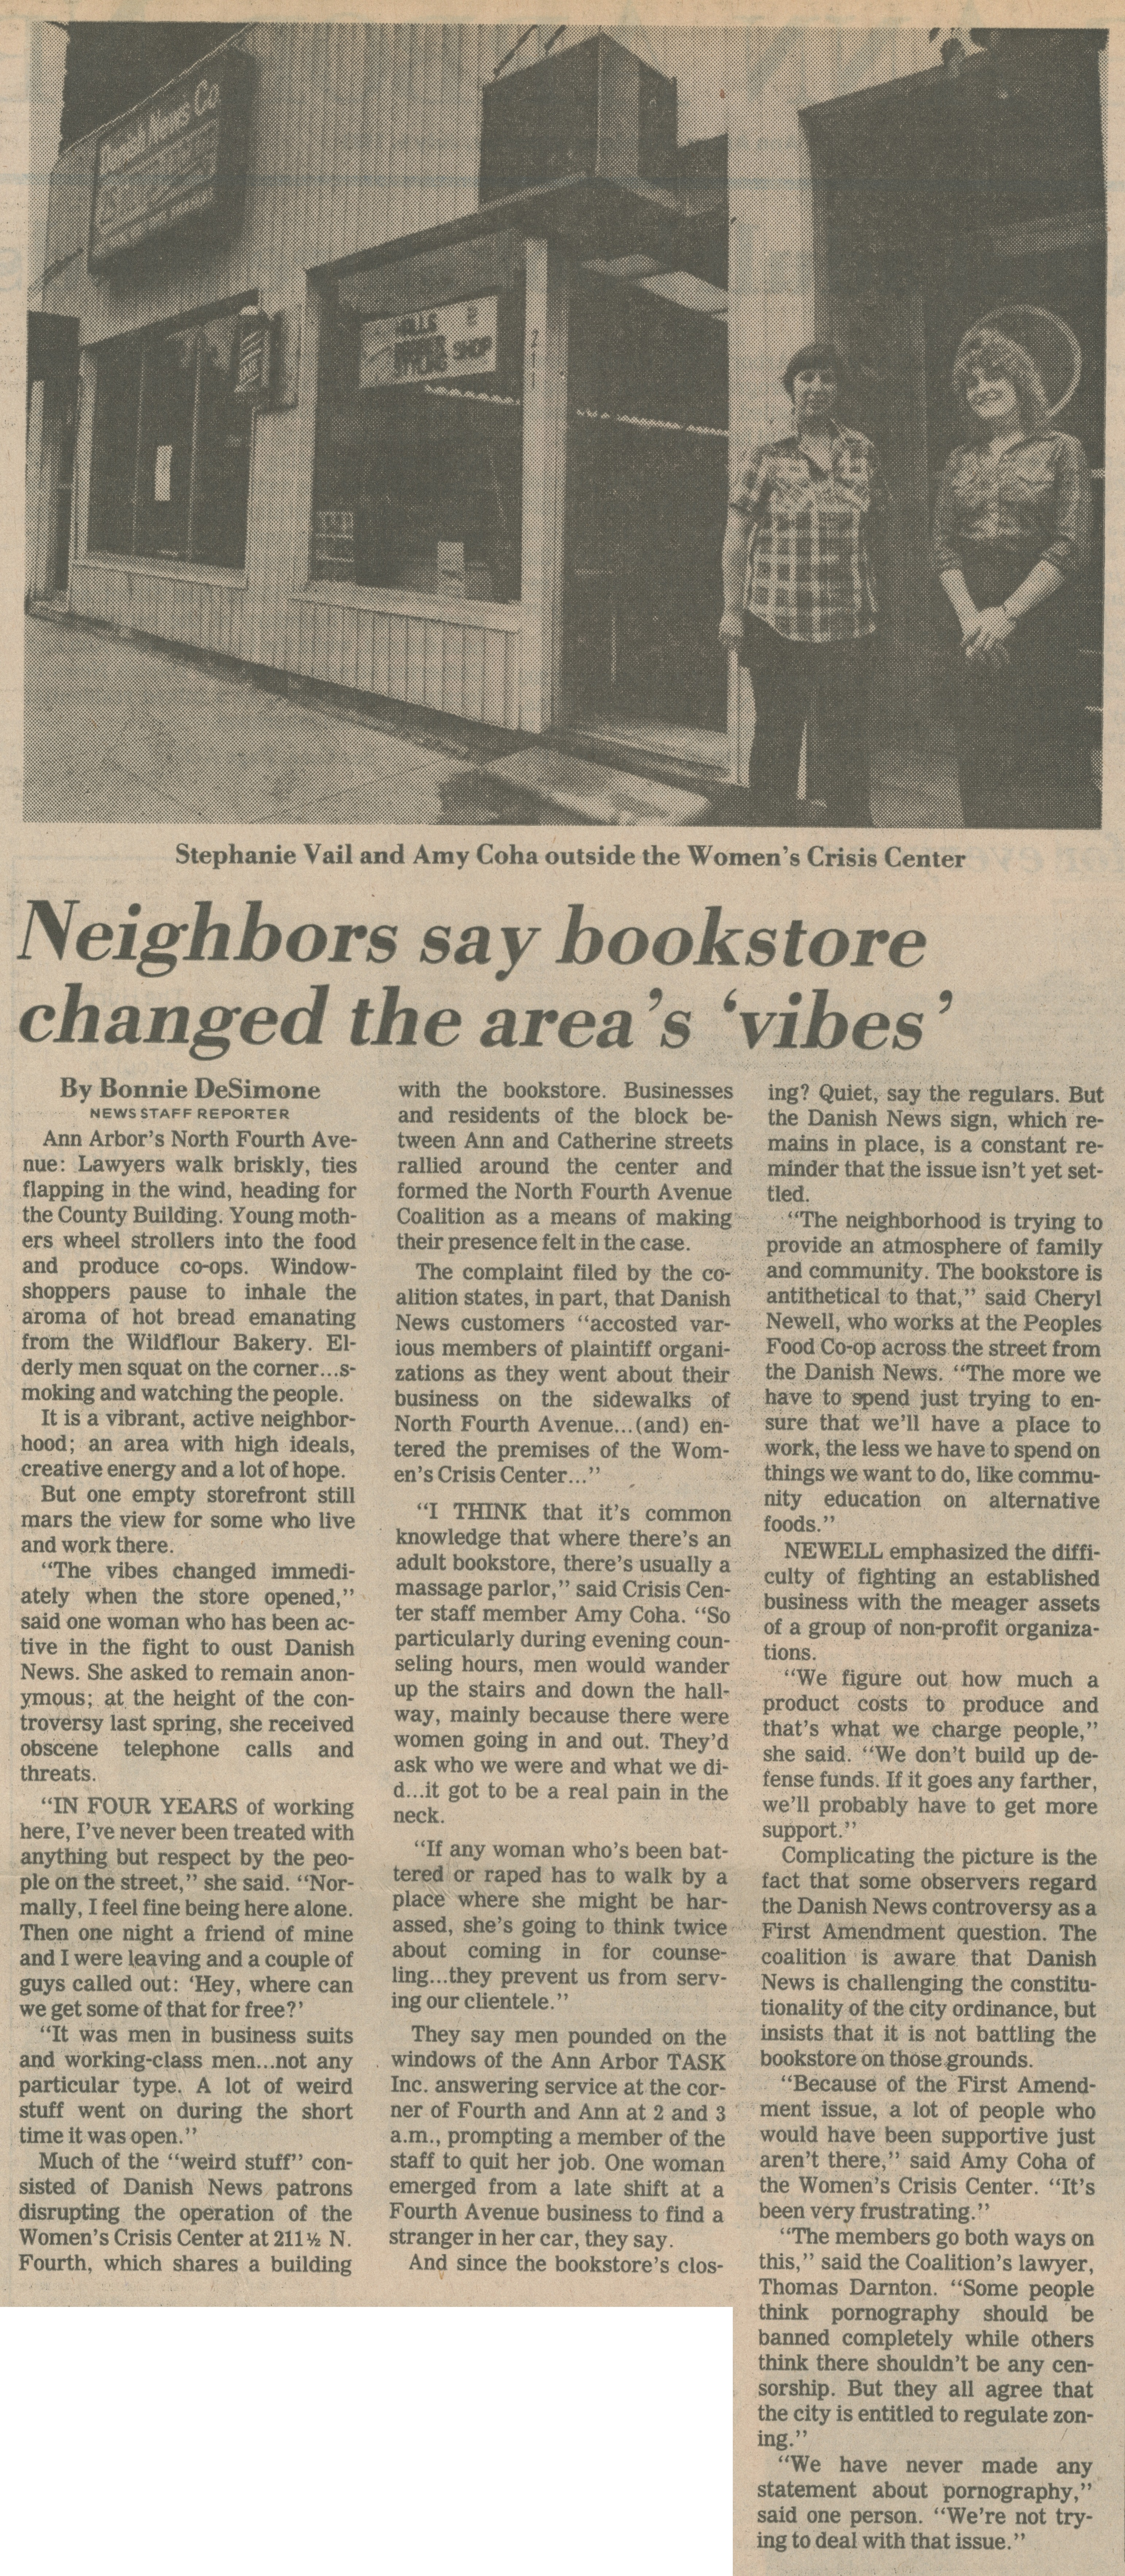 Neighbors say bookstore changed the area's 'vibes' image